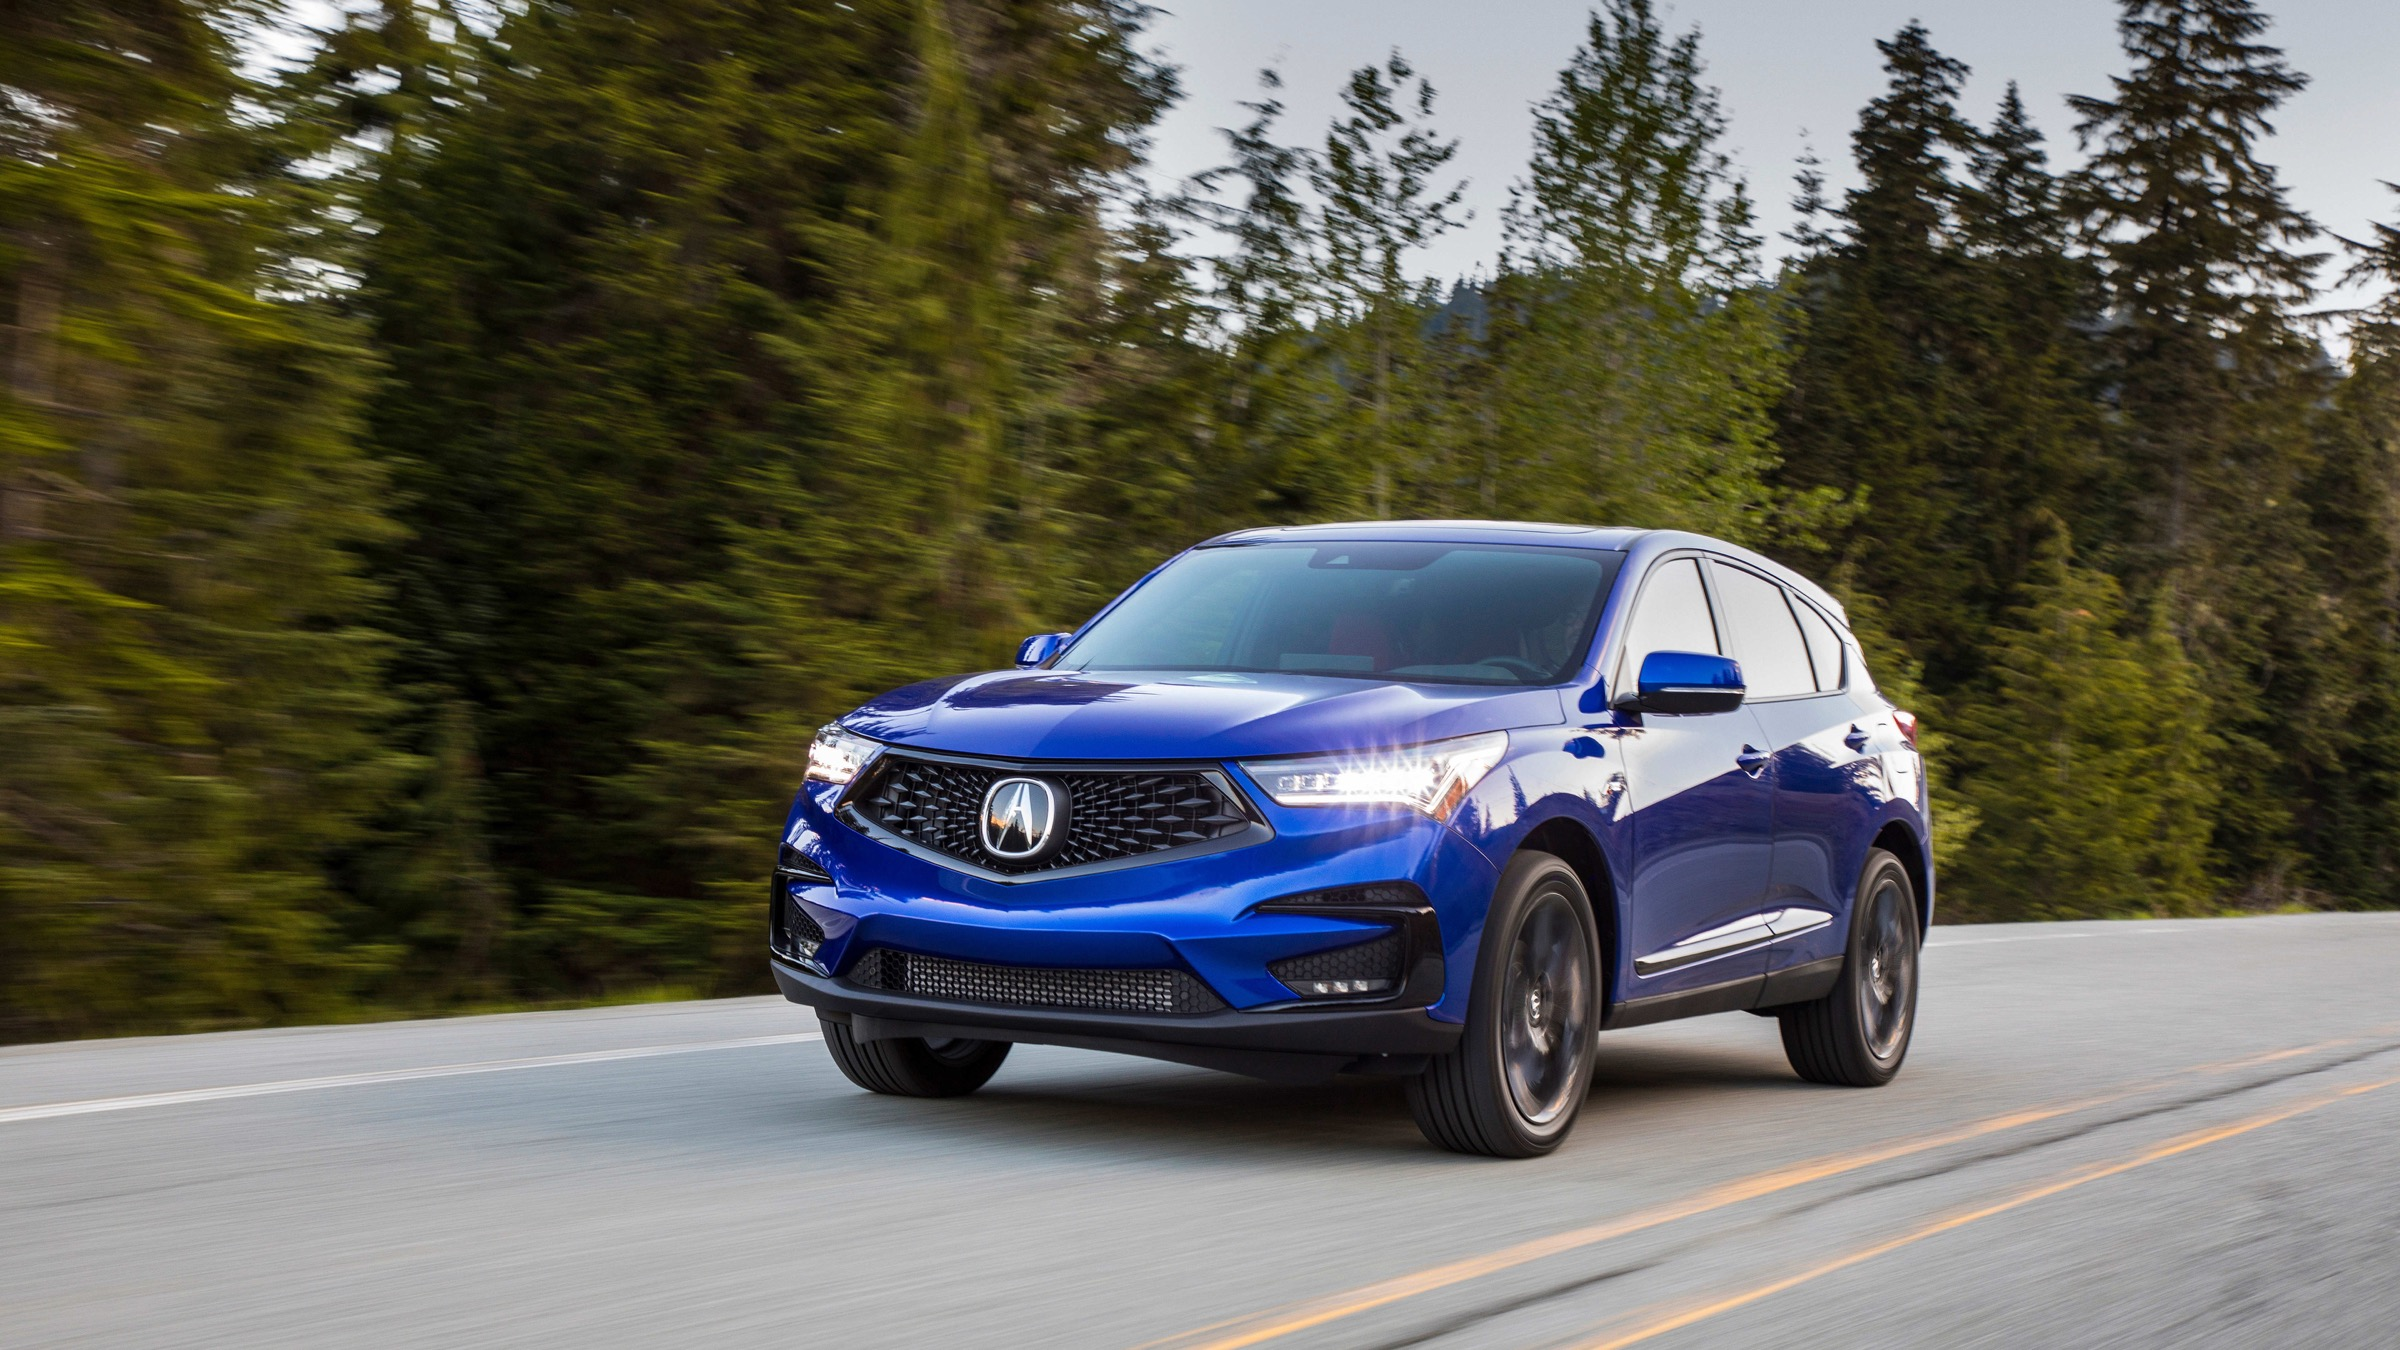 2020 acura rdx review and buying guide